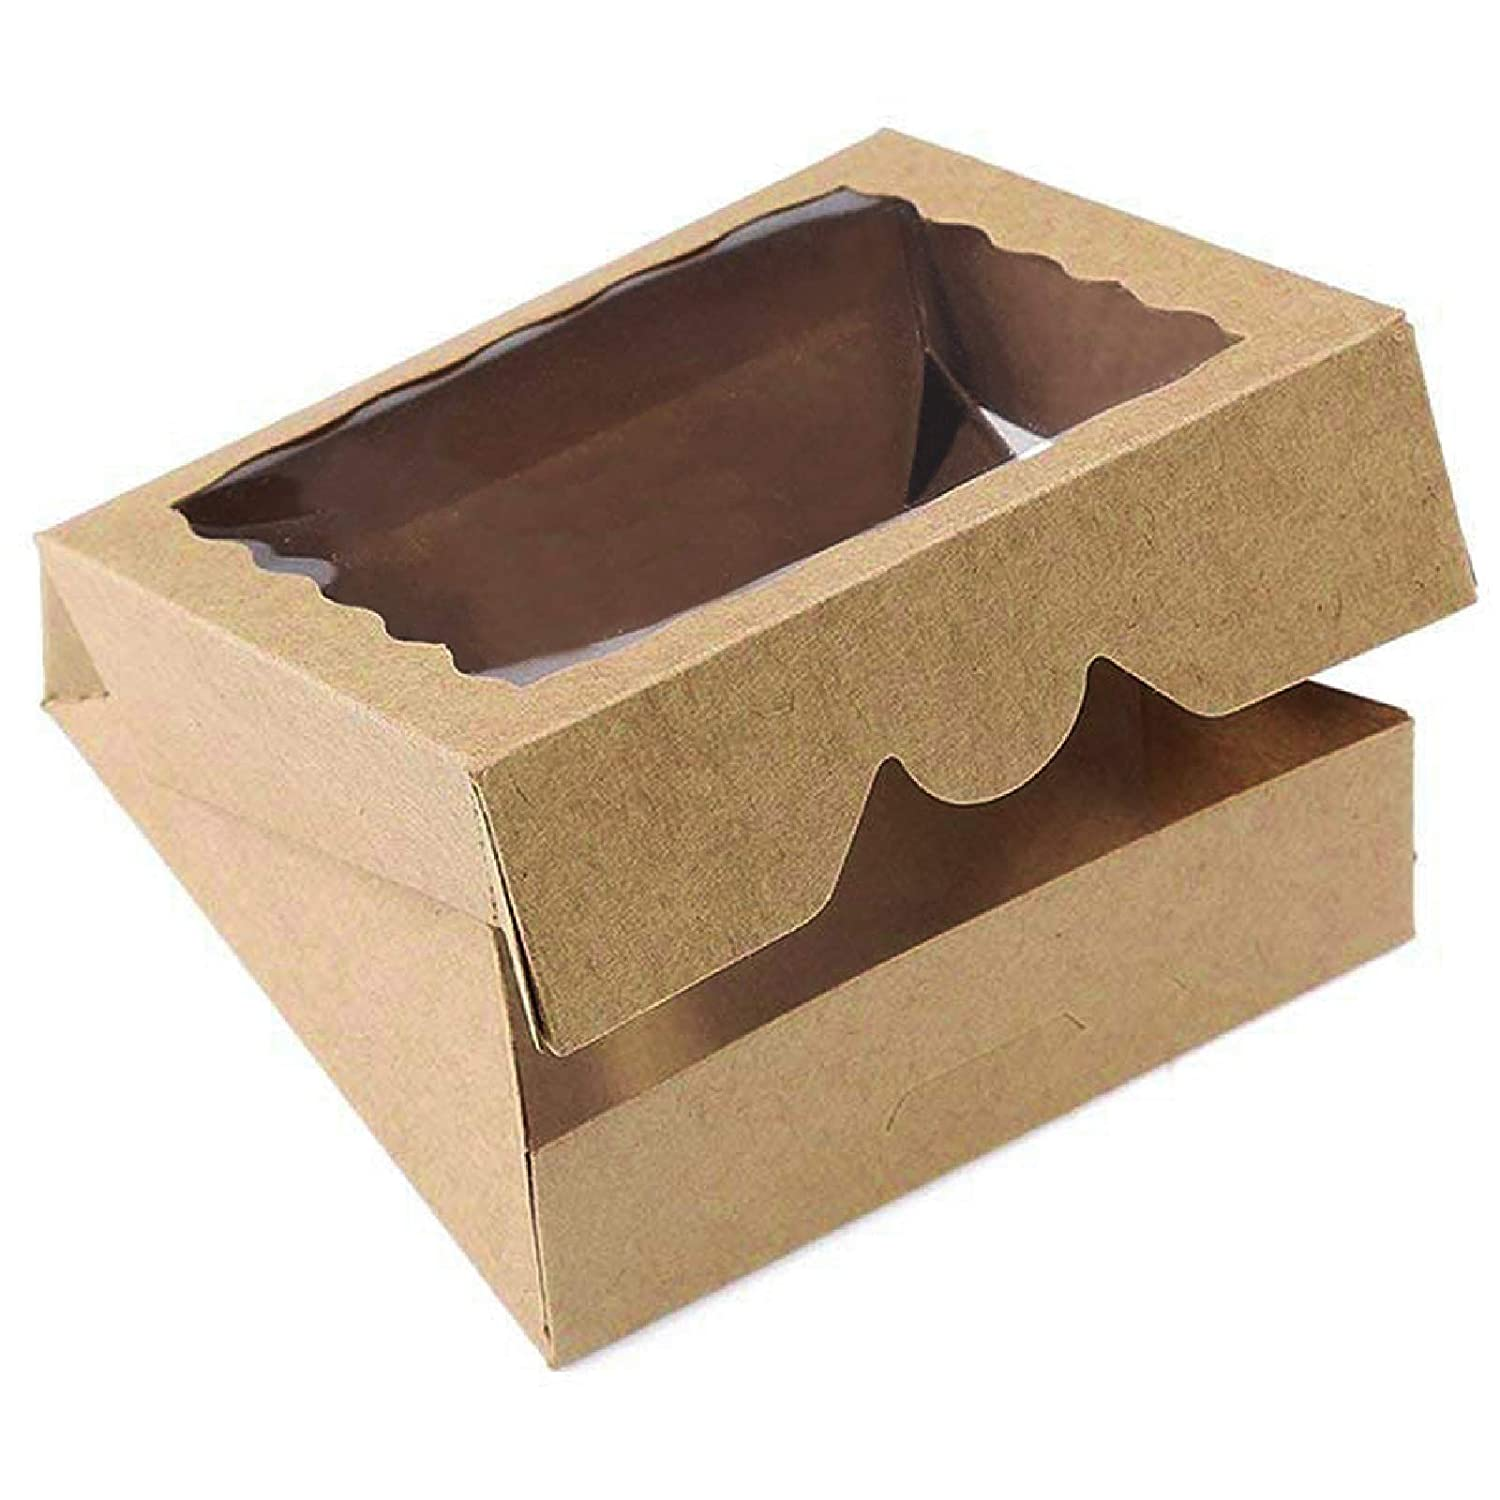 [15pcs]9inch Kraft Bakery Boxes,ONE MORE Large Pie Boxes with PVC Window Natural Disposable Box for Cookie 9x9x2.5inch,15 of Pack